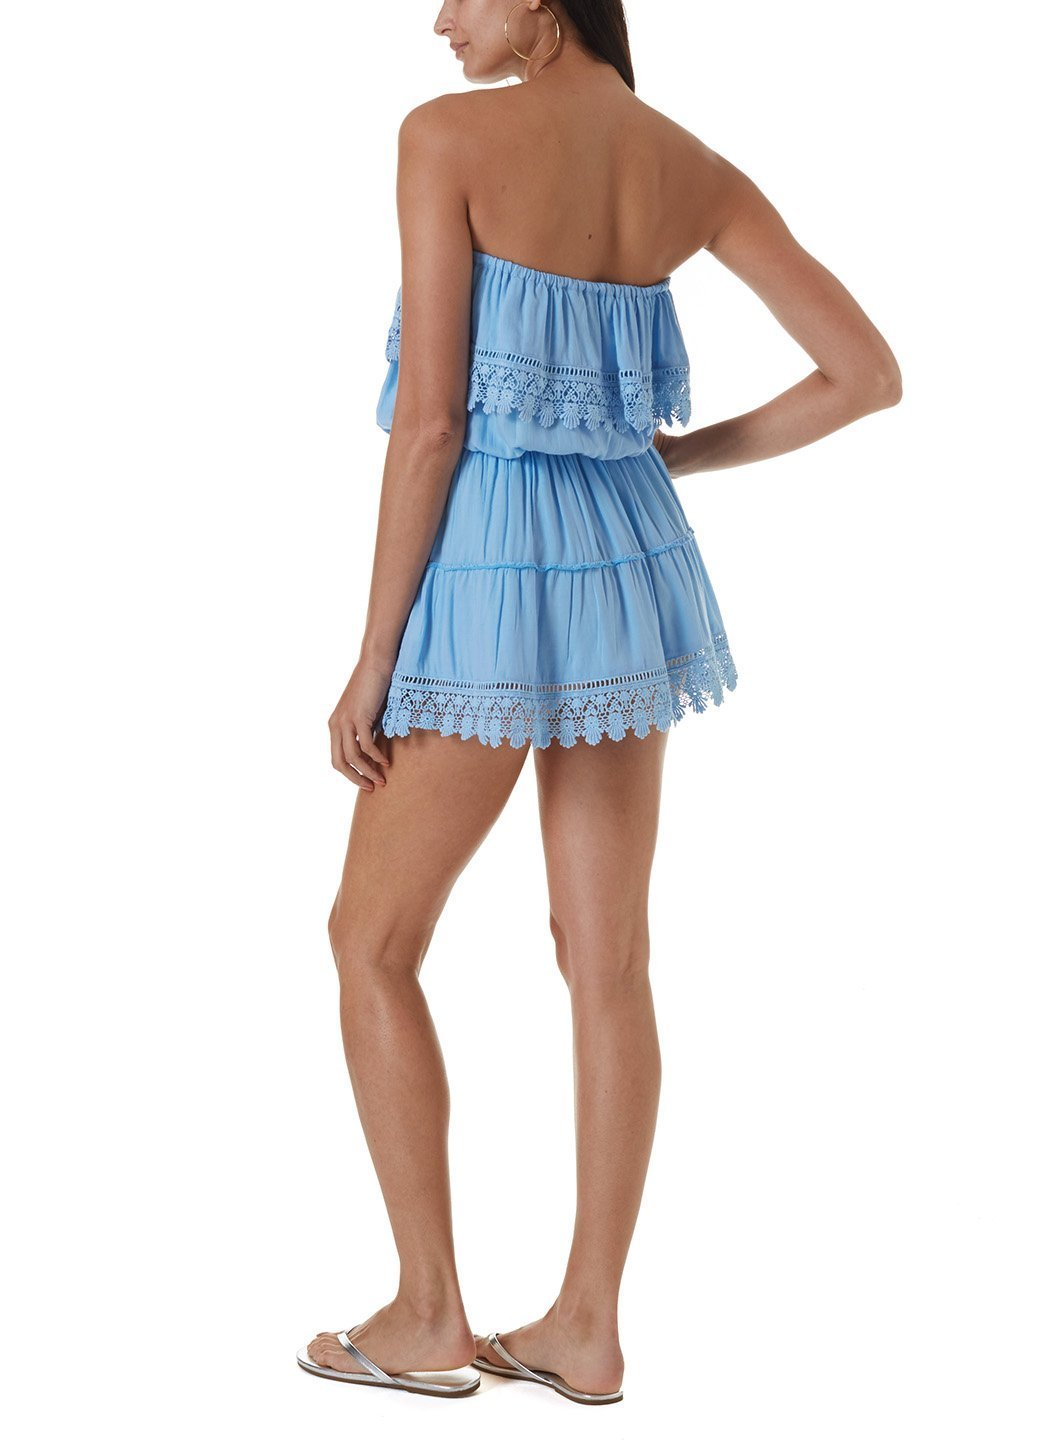 joy cornflower short dress